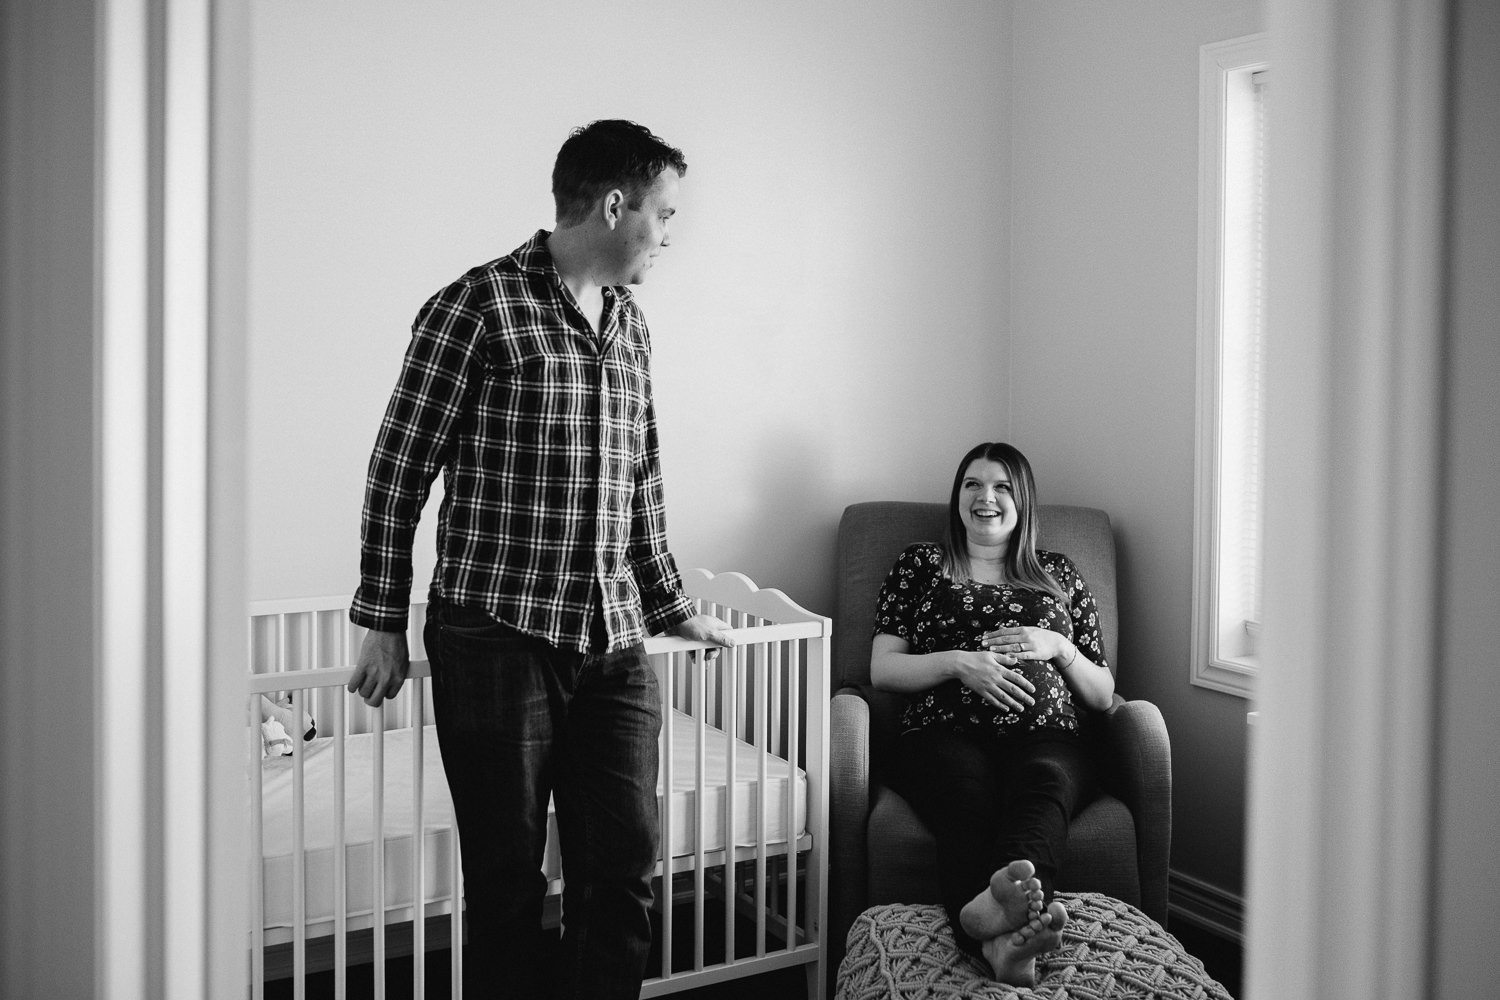 pregnant mom sits in nursery glider smiling at husband, hands on baby belly - Uxbridge In-Home Photography